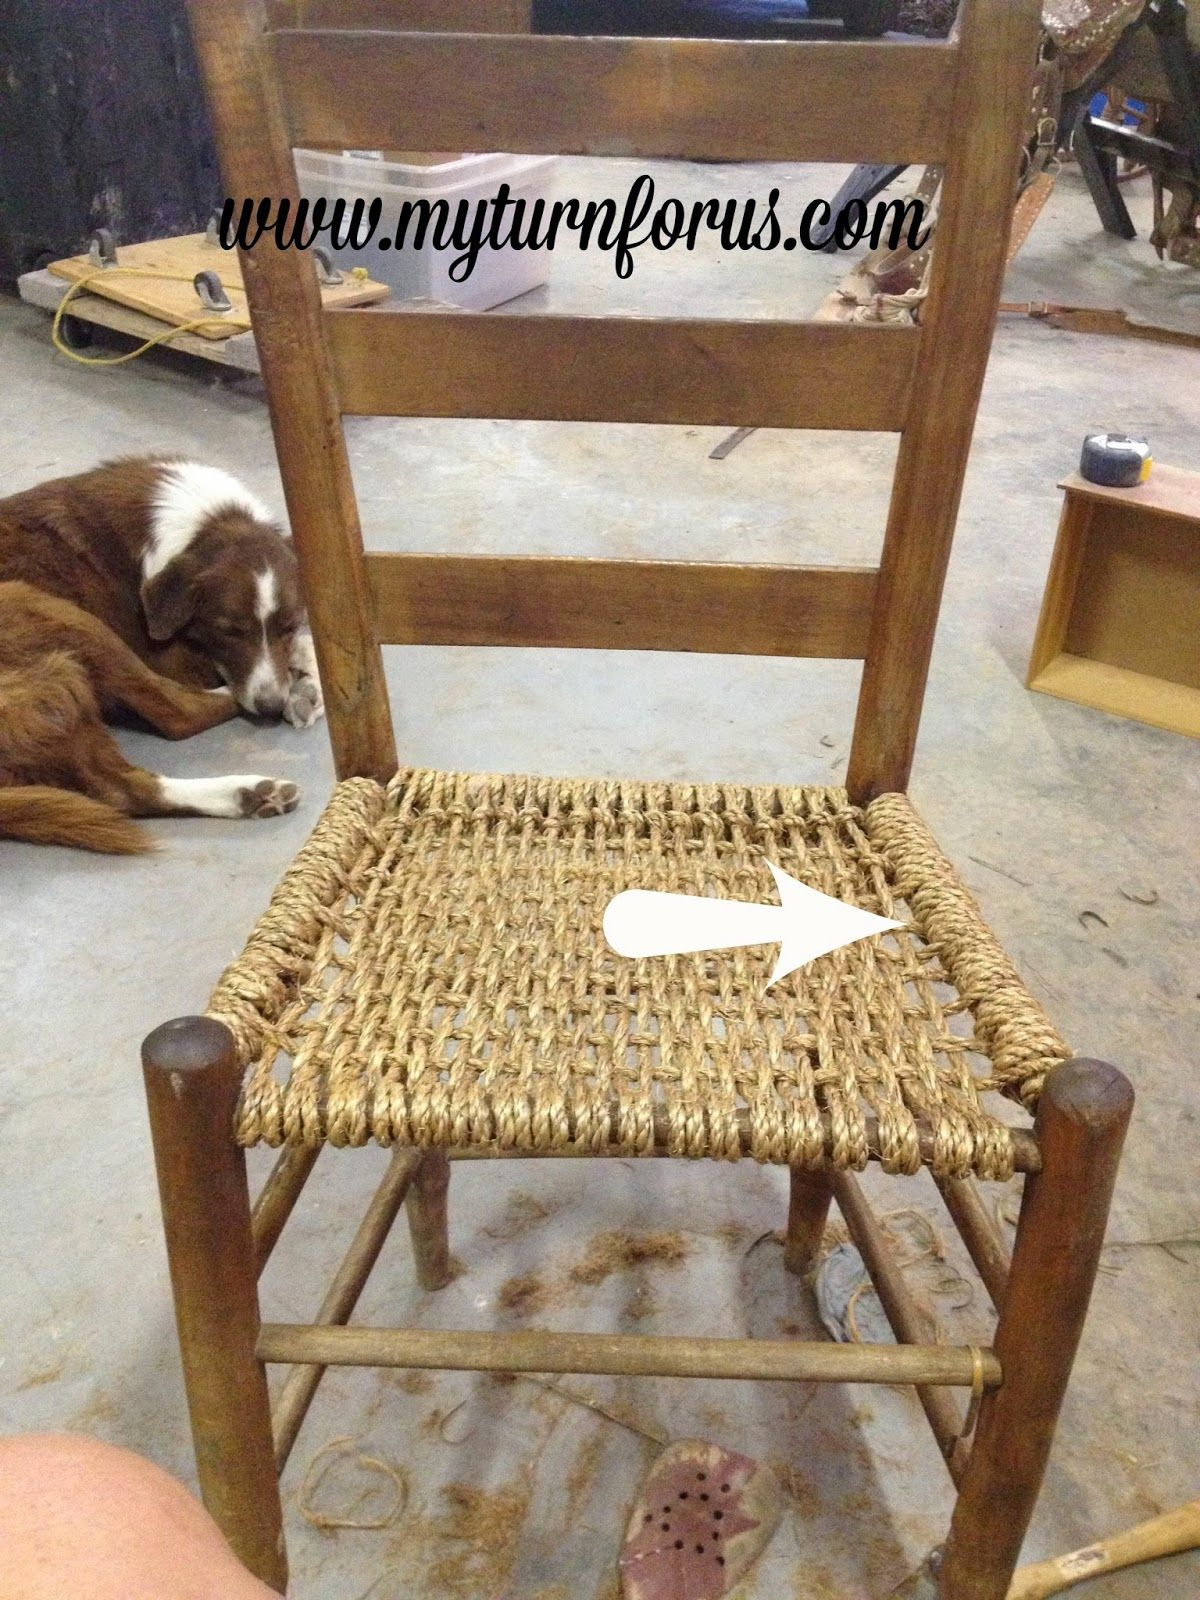 How To Weave And Restore A Hemp Seat On A Chair Home Diy